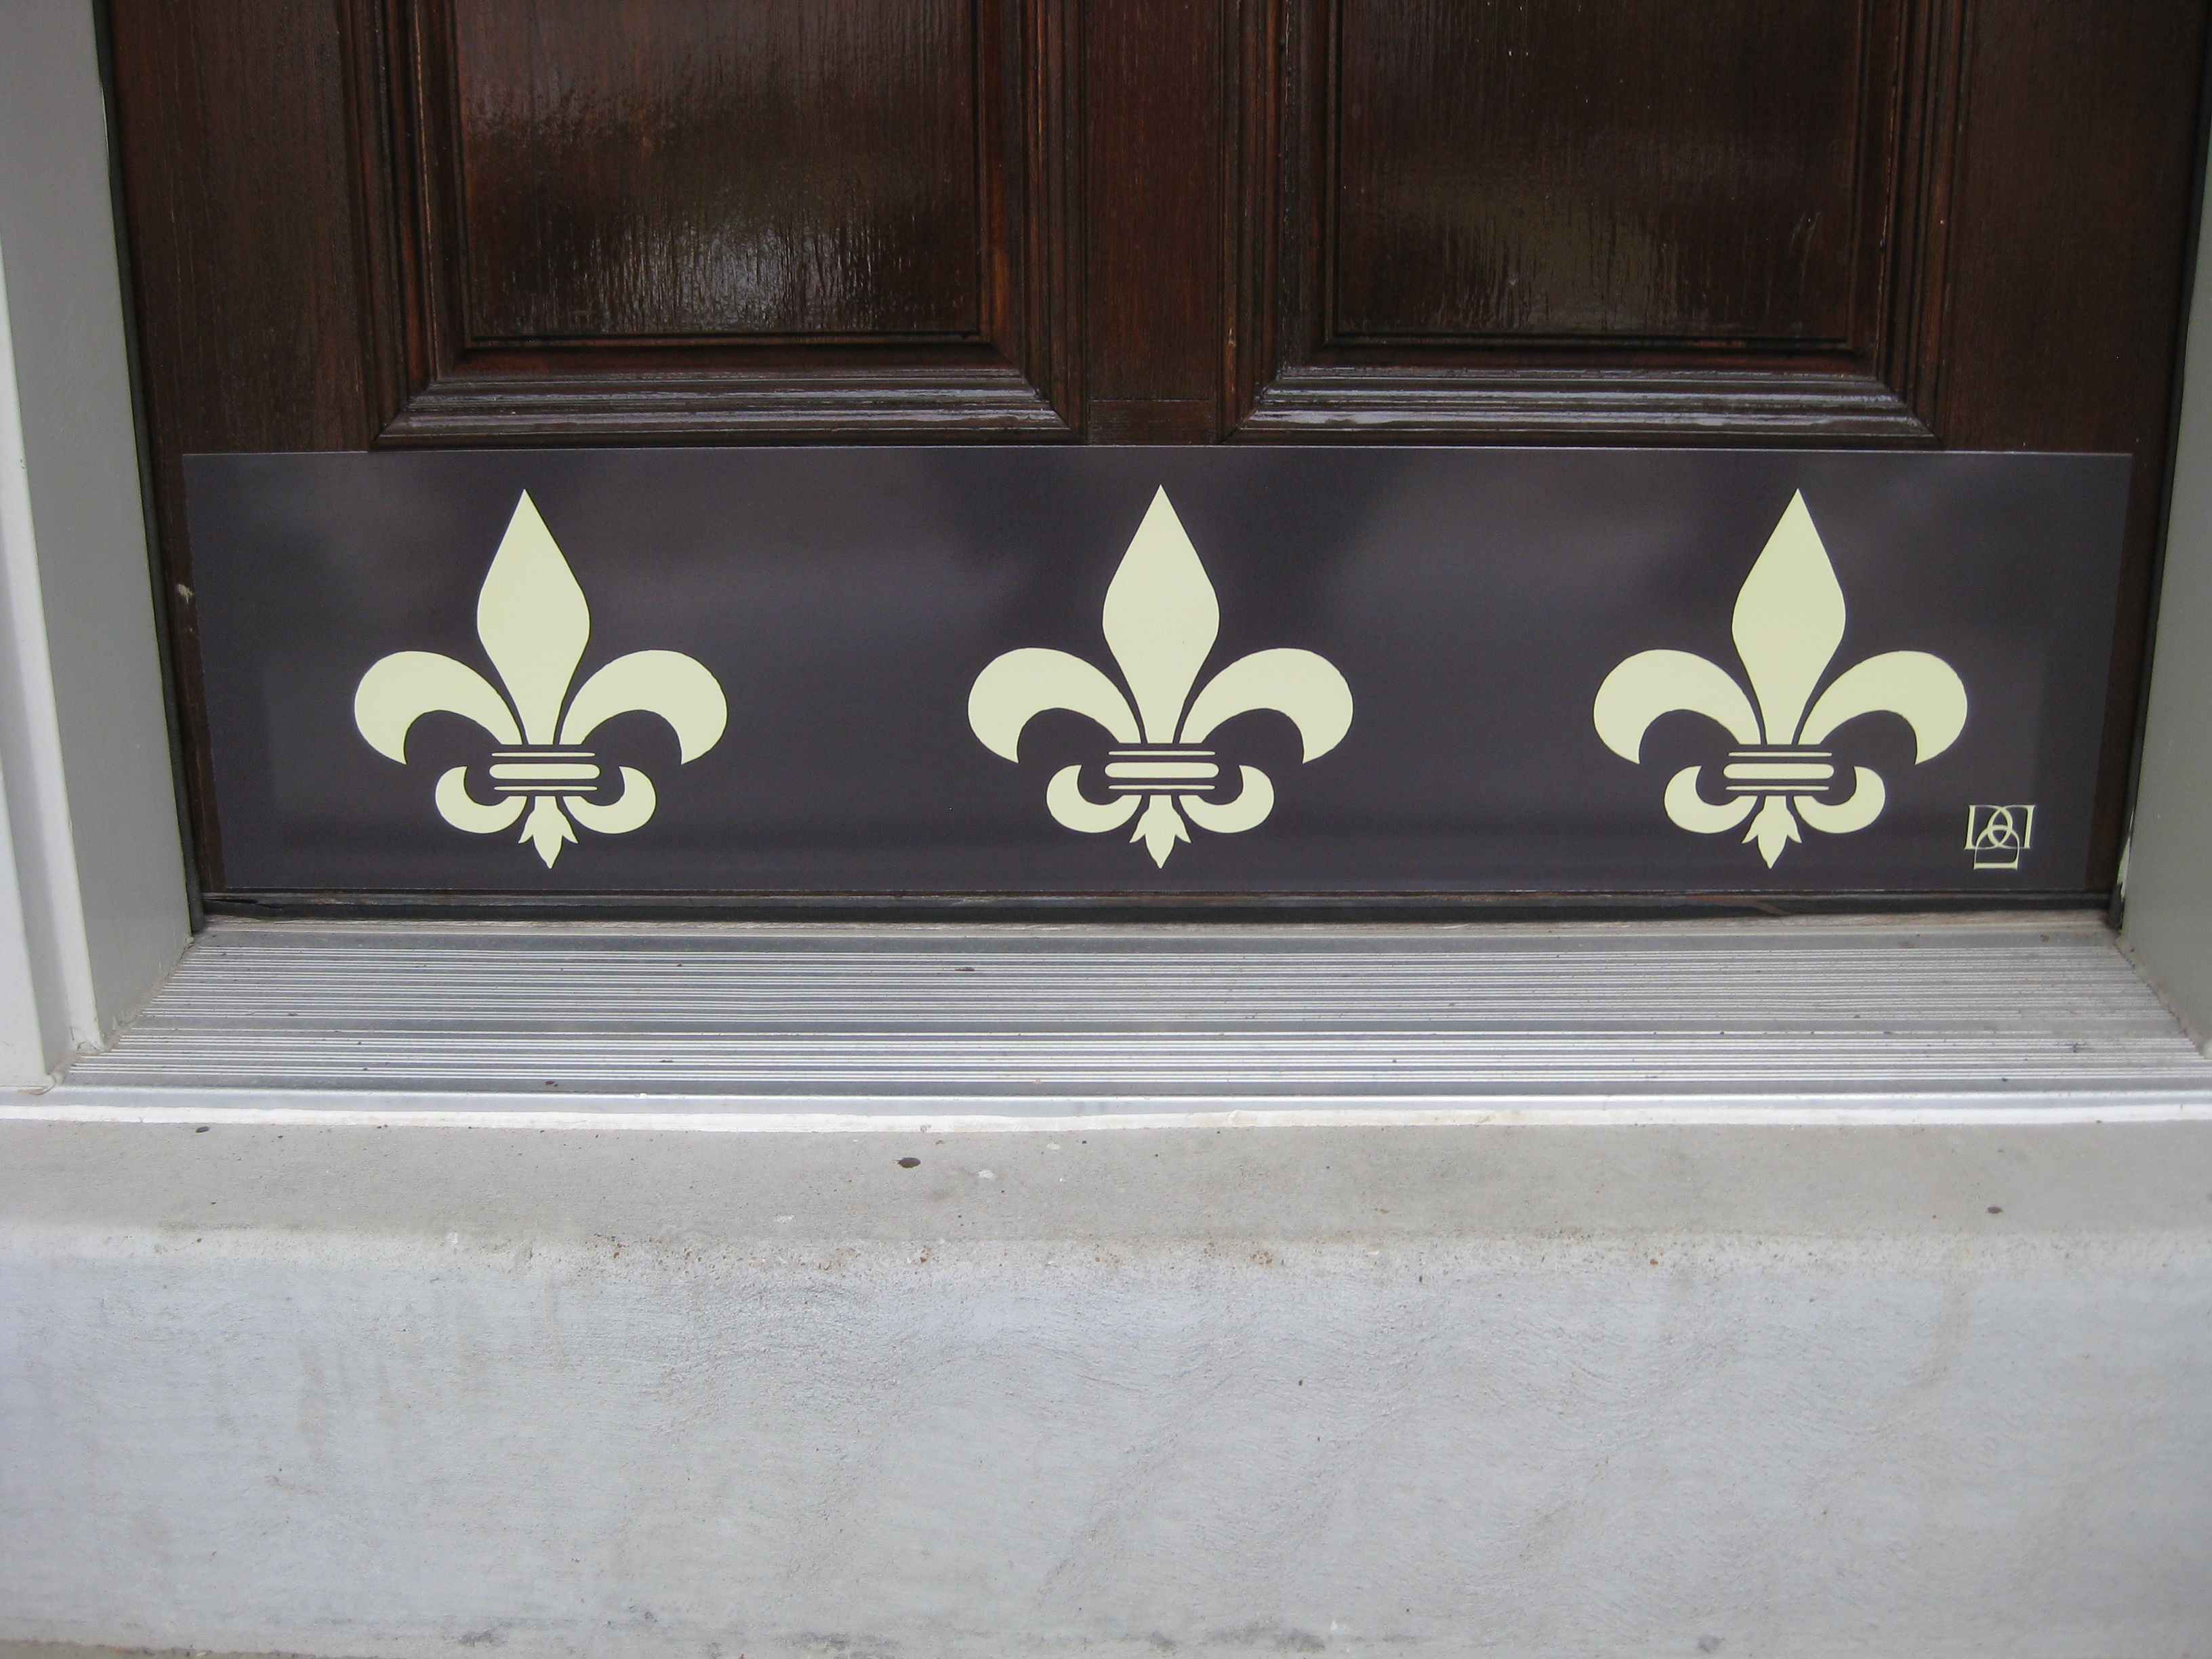 fleur de photos lis latest showing attachment and decor inside view metal home art wall of